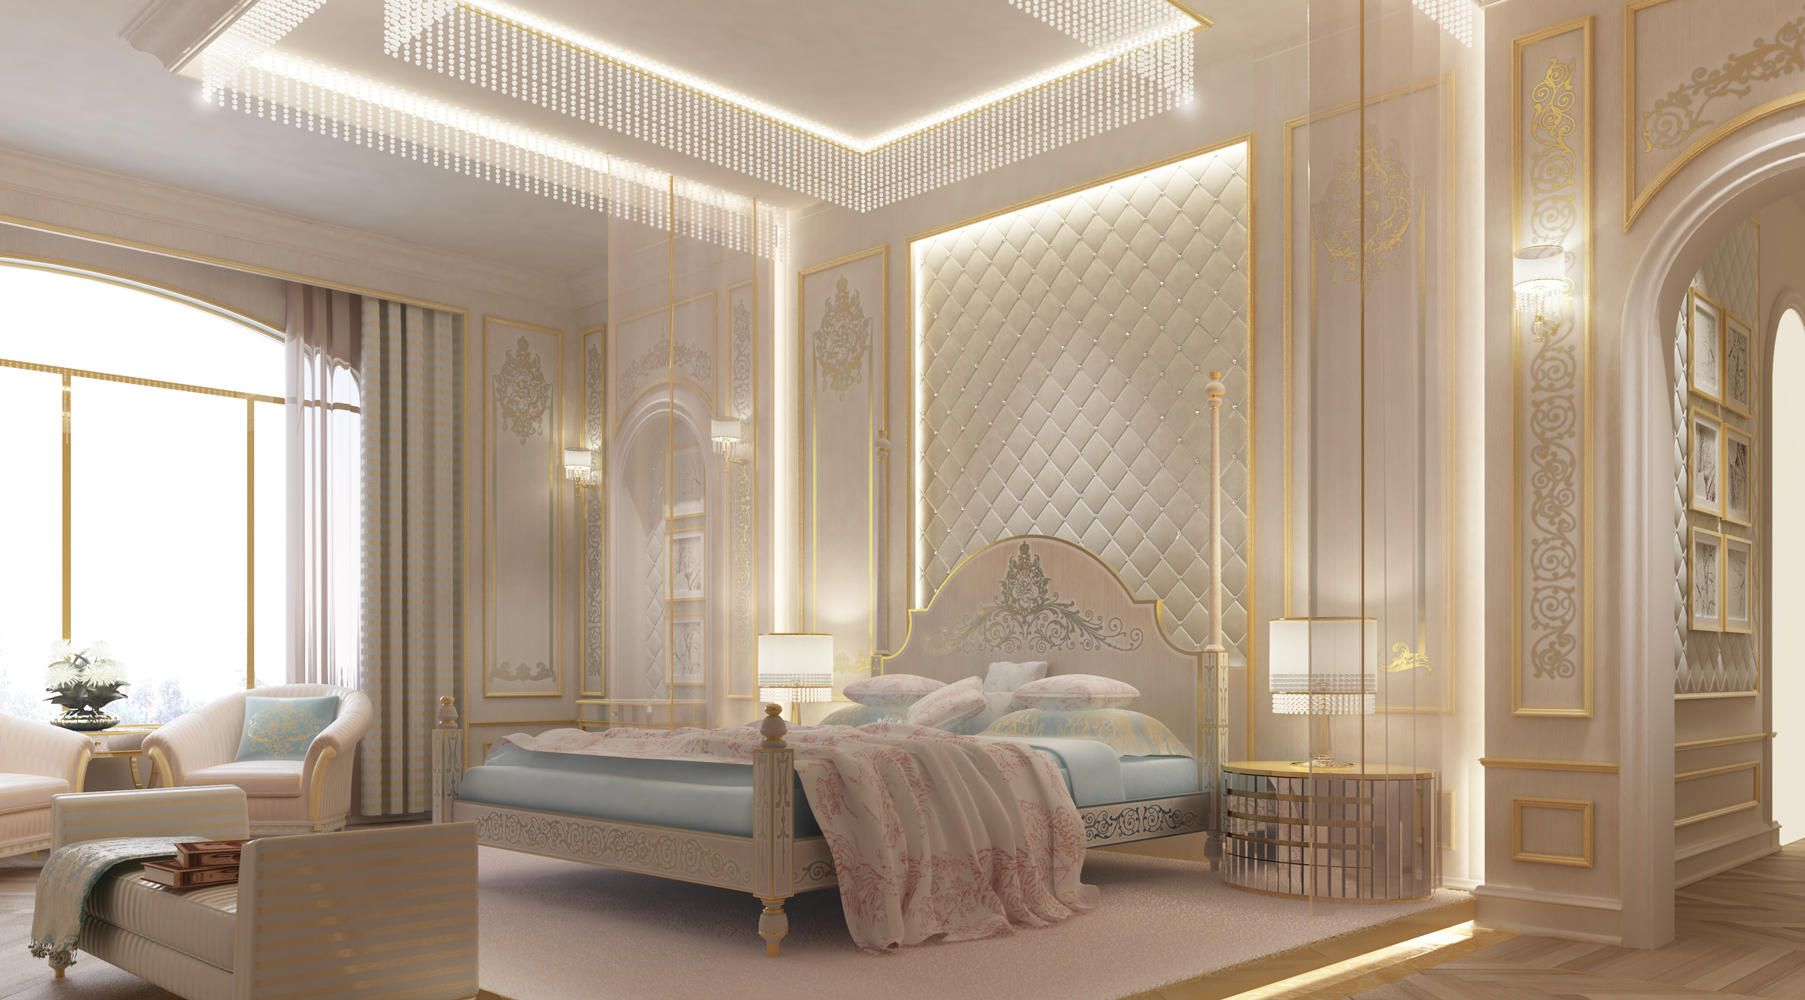 Dubai bedroom bedroom design abu dhabi d for Interior design receiving room